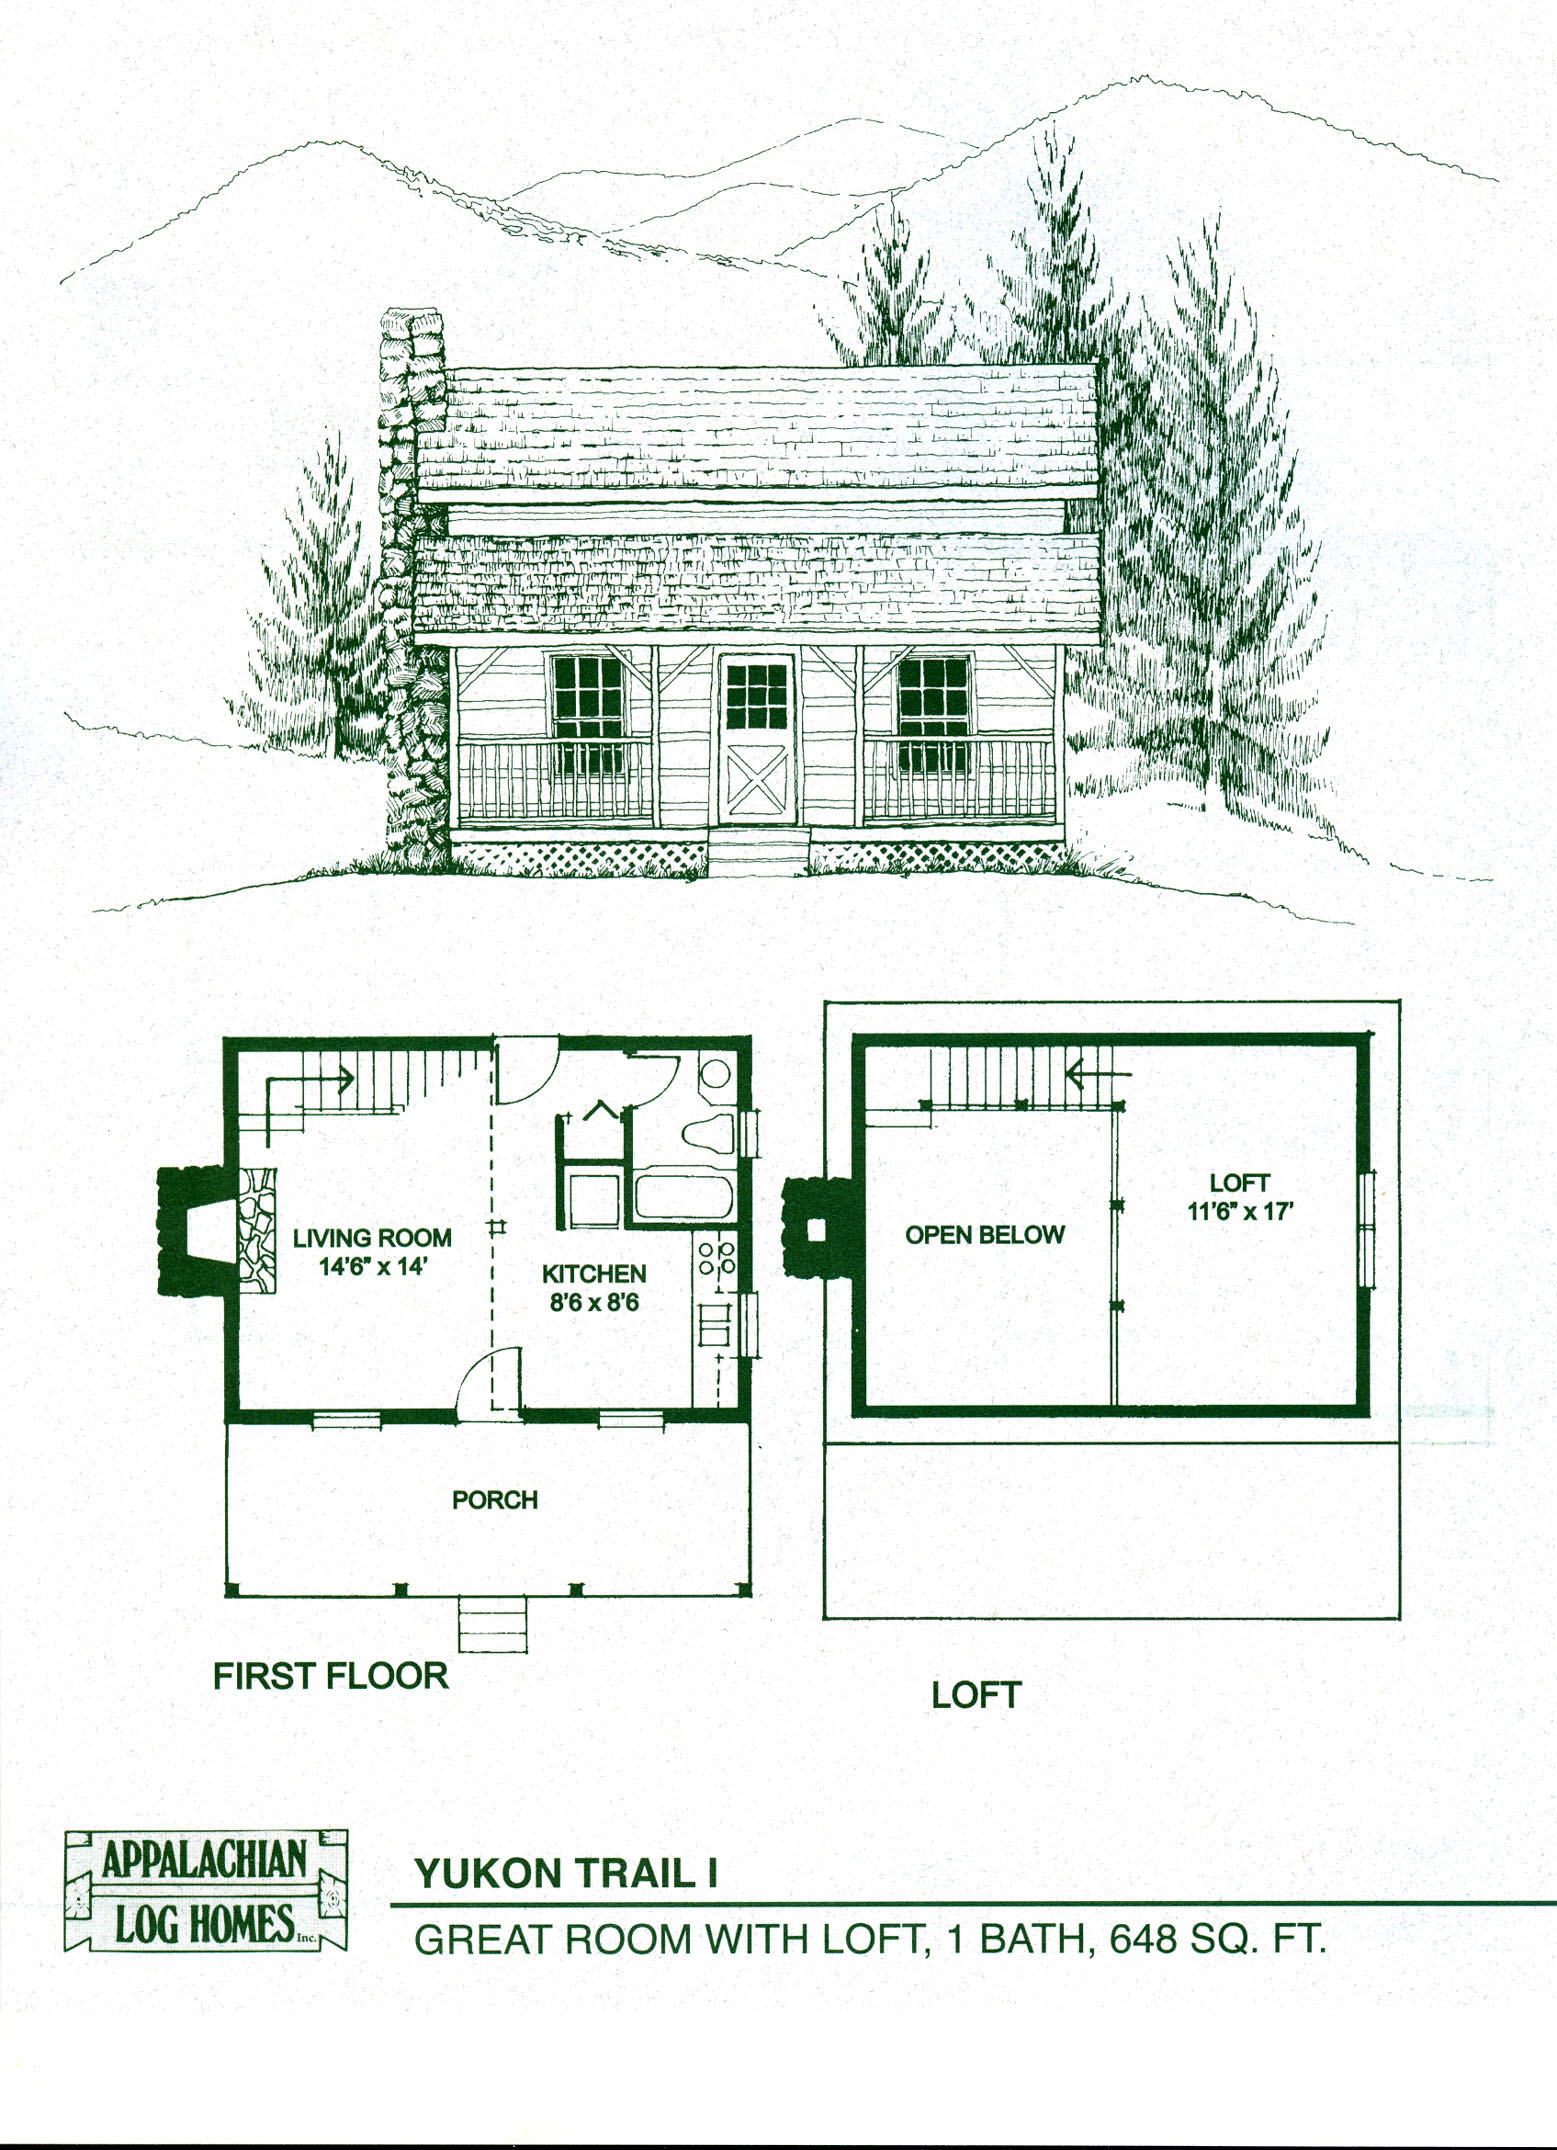 Small cottage home designs 19463 hd wallpapers background for Cottages plans designs